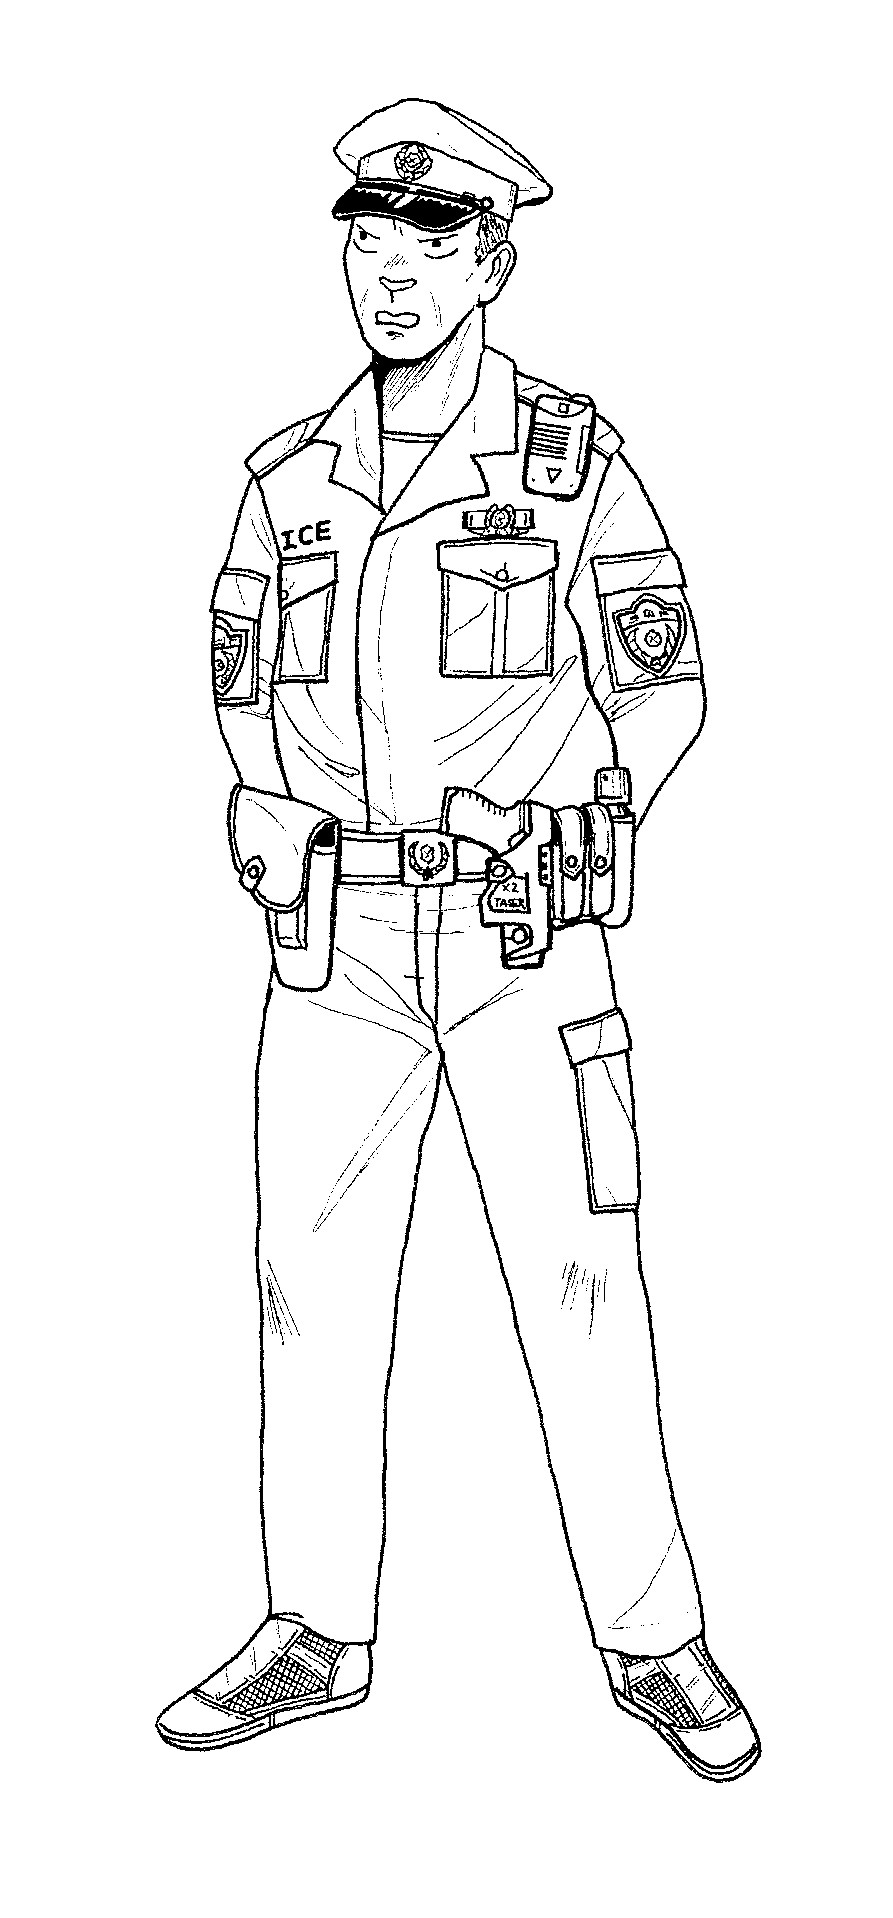 police pictures to colour free printable policeman coloring pages for kids pictures police to colour